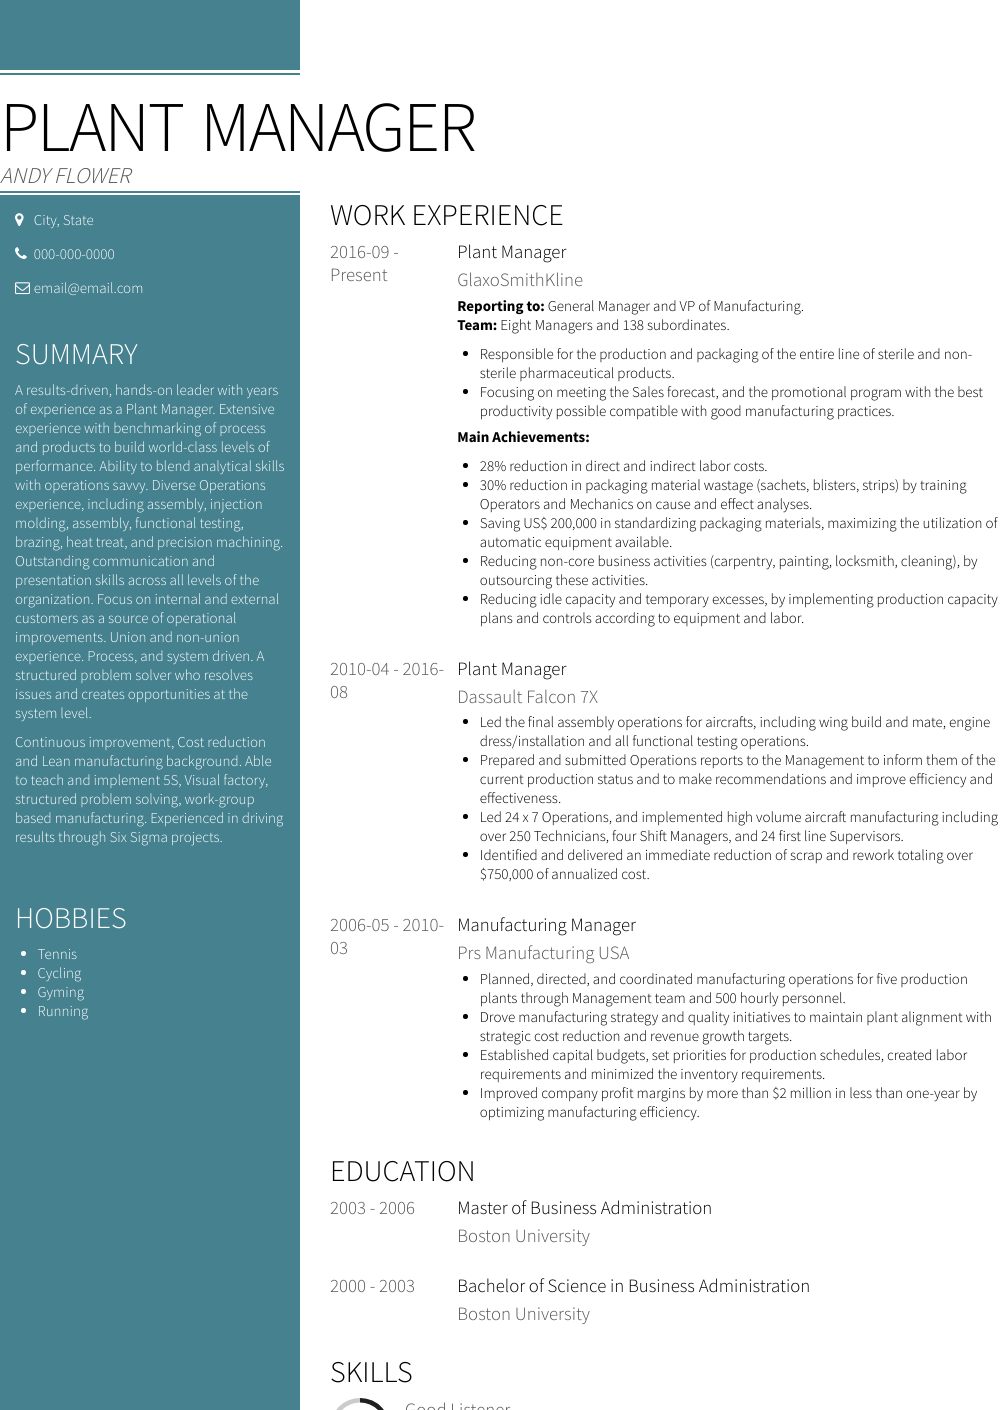 Plant Manager Resume Sample and Template